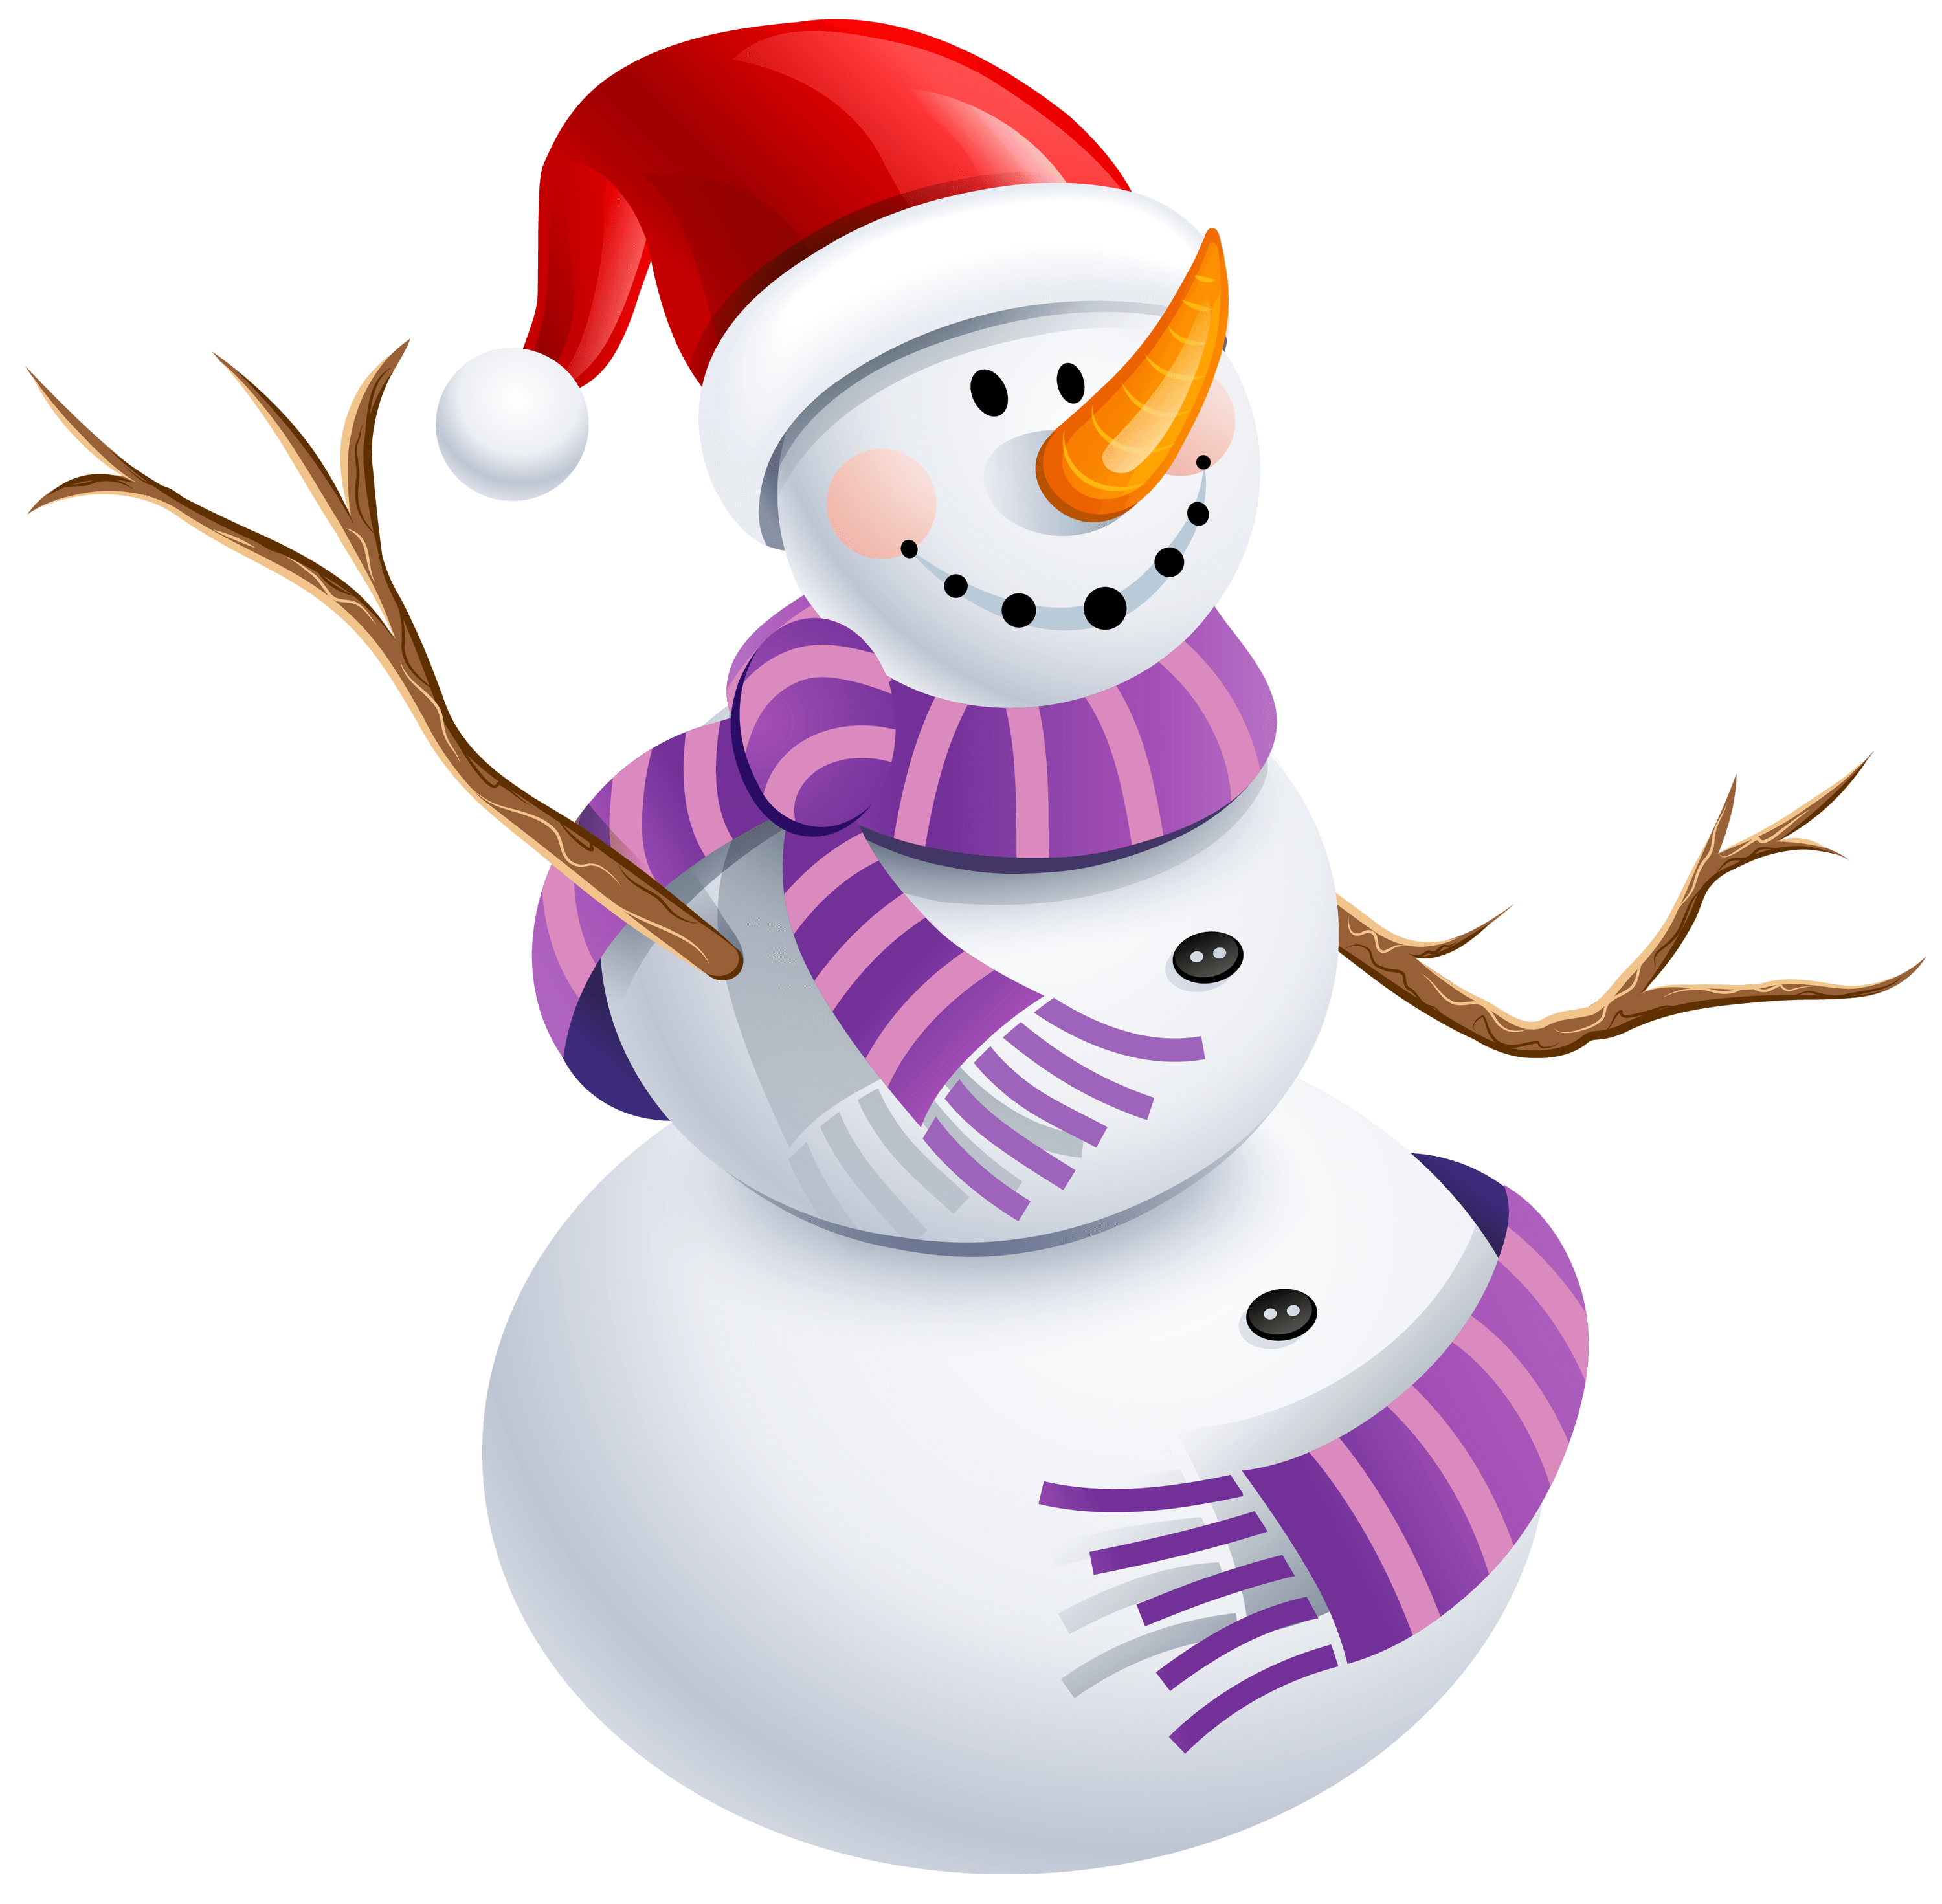 Snowman purple transparent stickpng. Snow man png vector library library